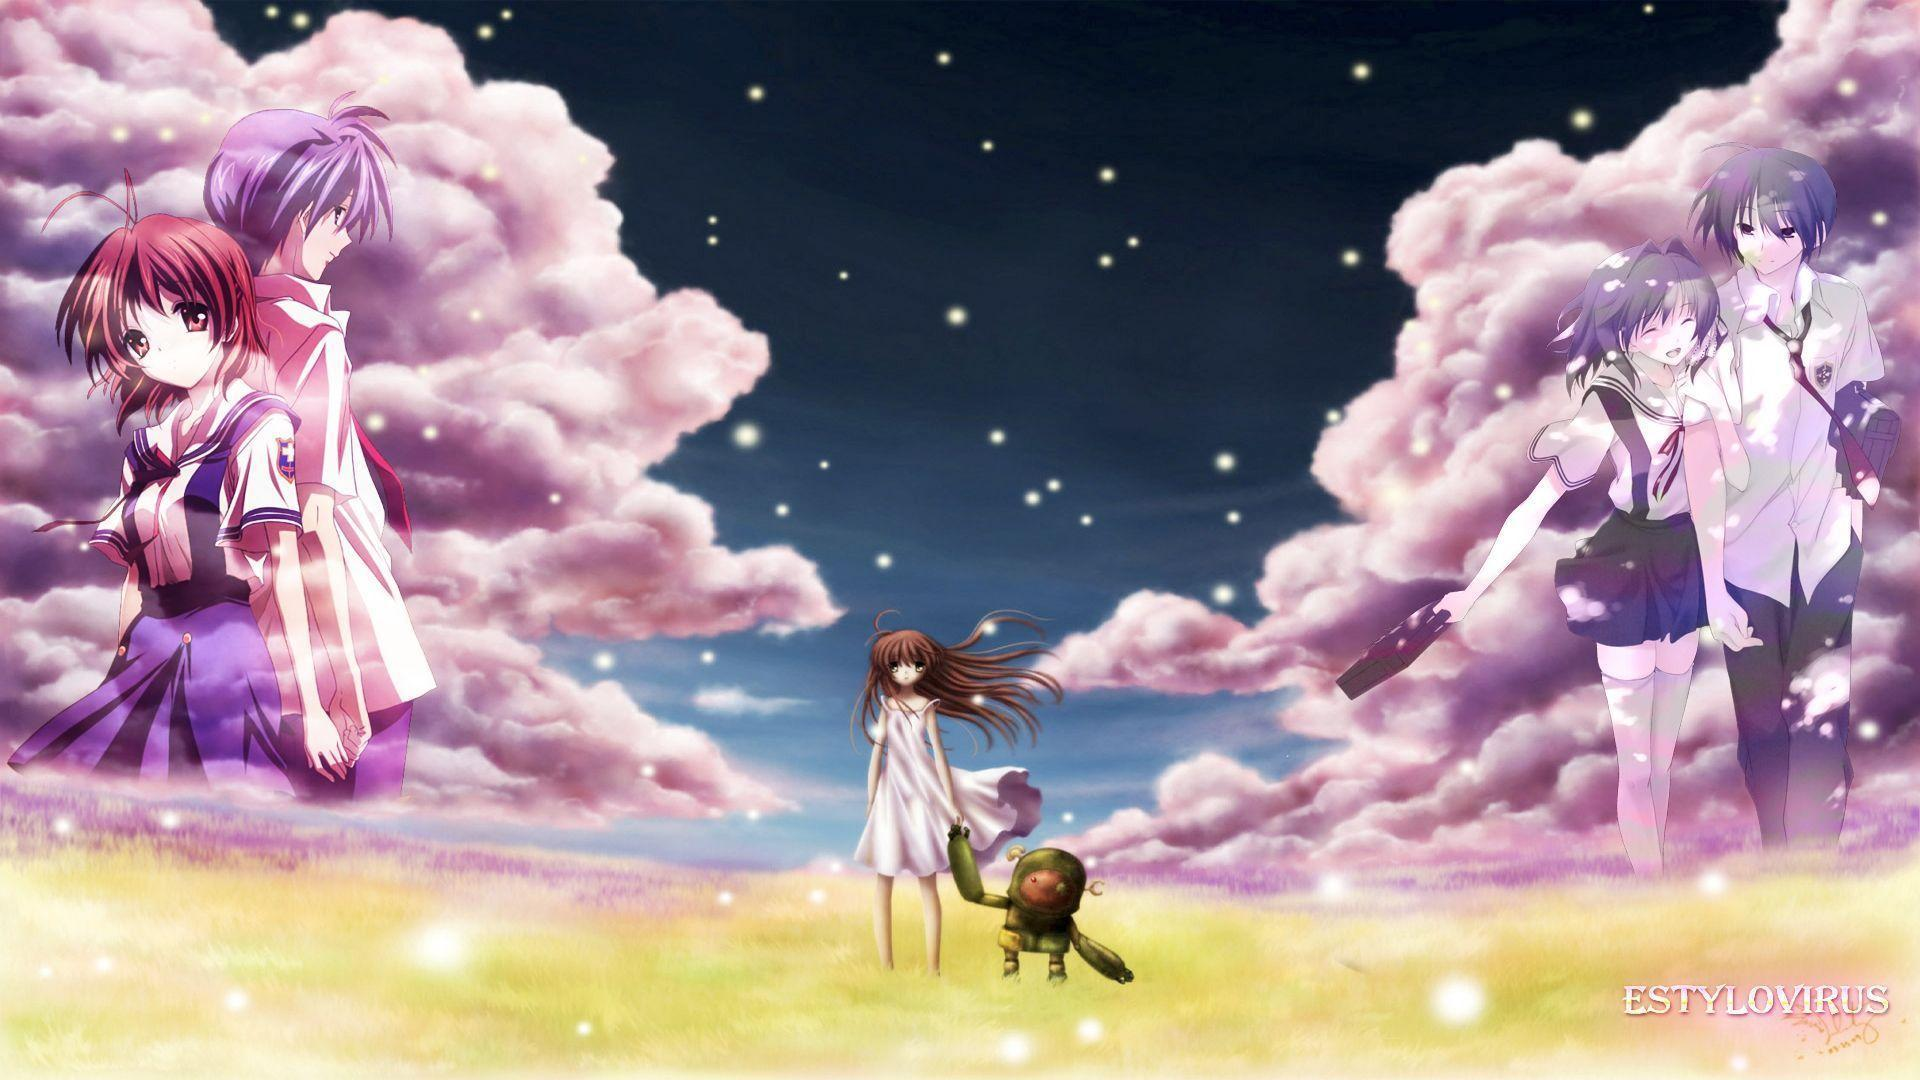 Free Download Clannad Wallpapers 1920x1080 For Your Desktop